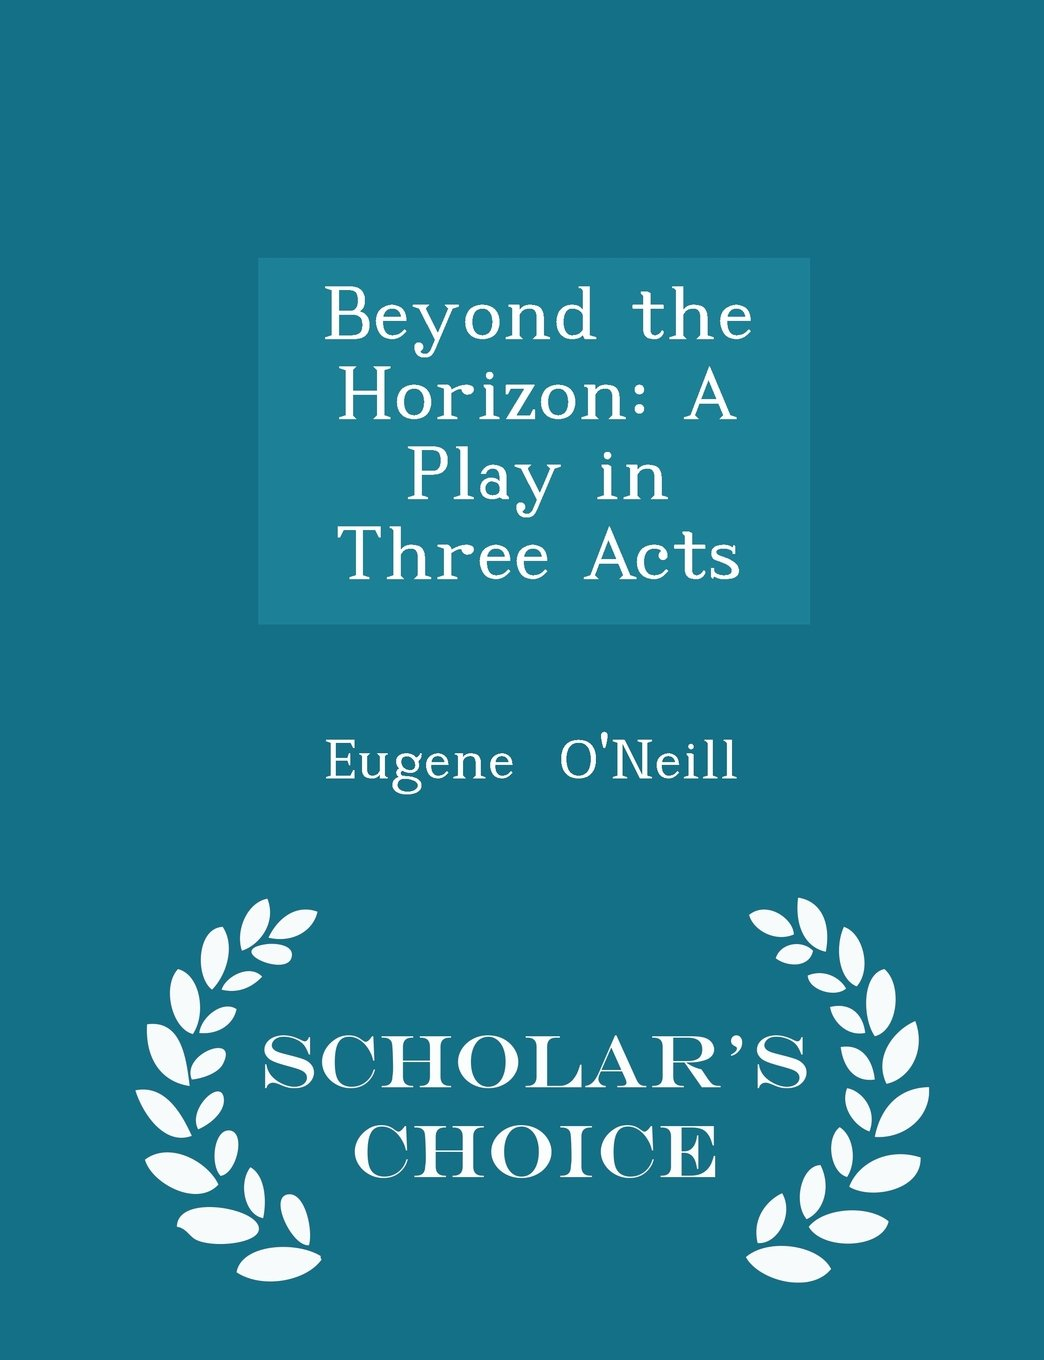 Download Beyond the Horizon: A Play in Three Acts - Scholar's Choice Edition PDF